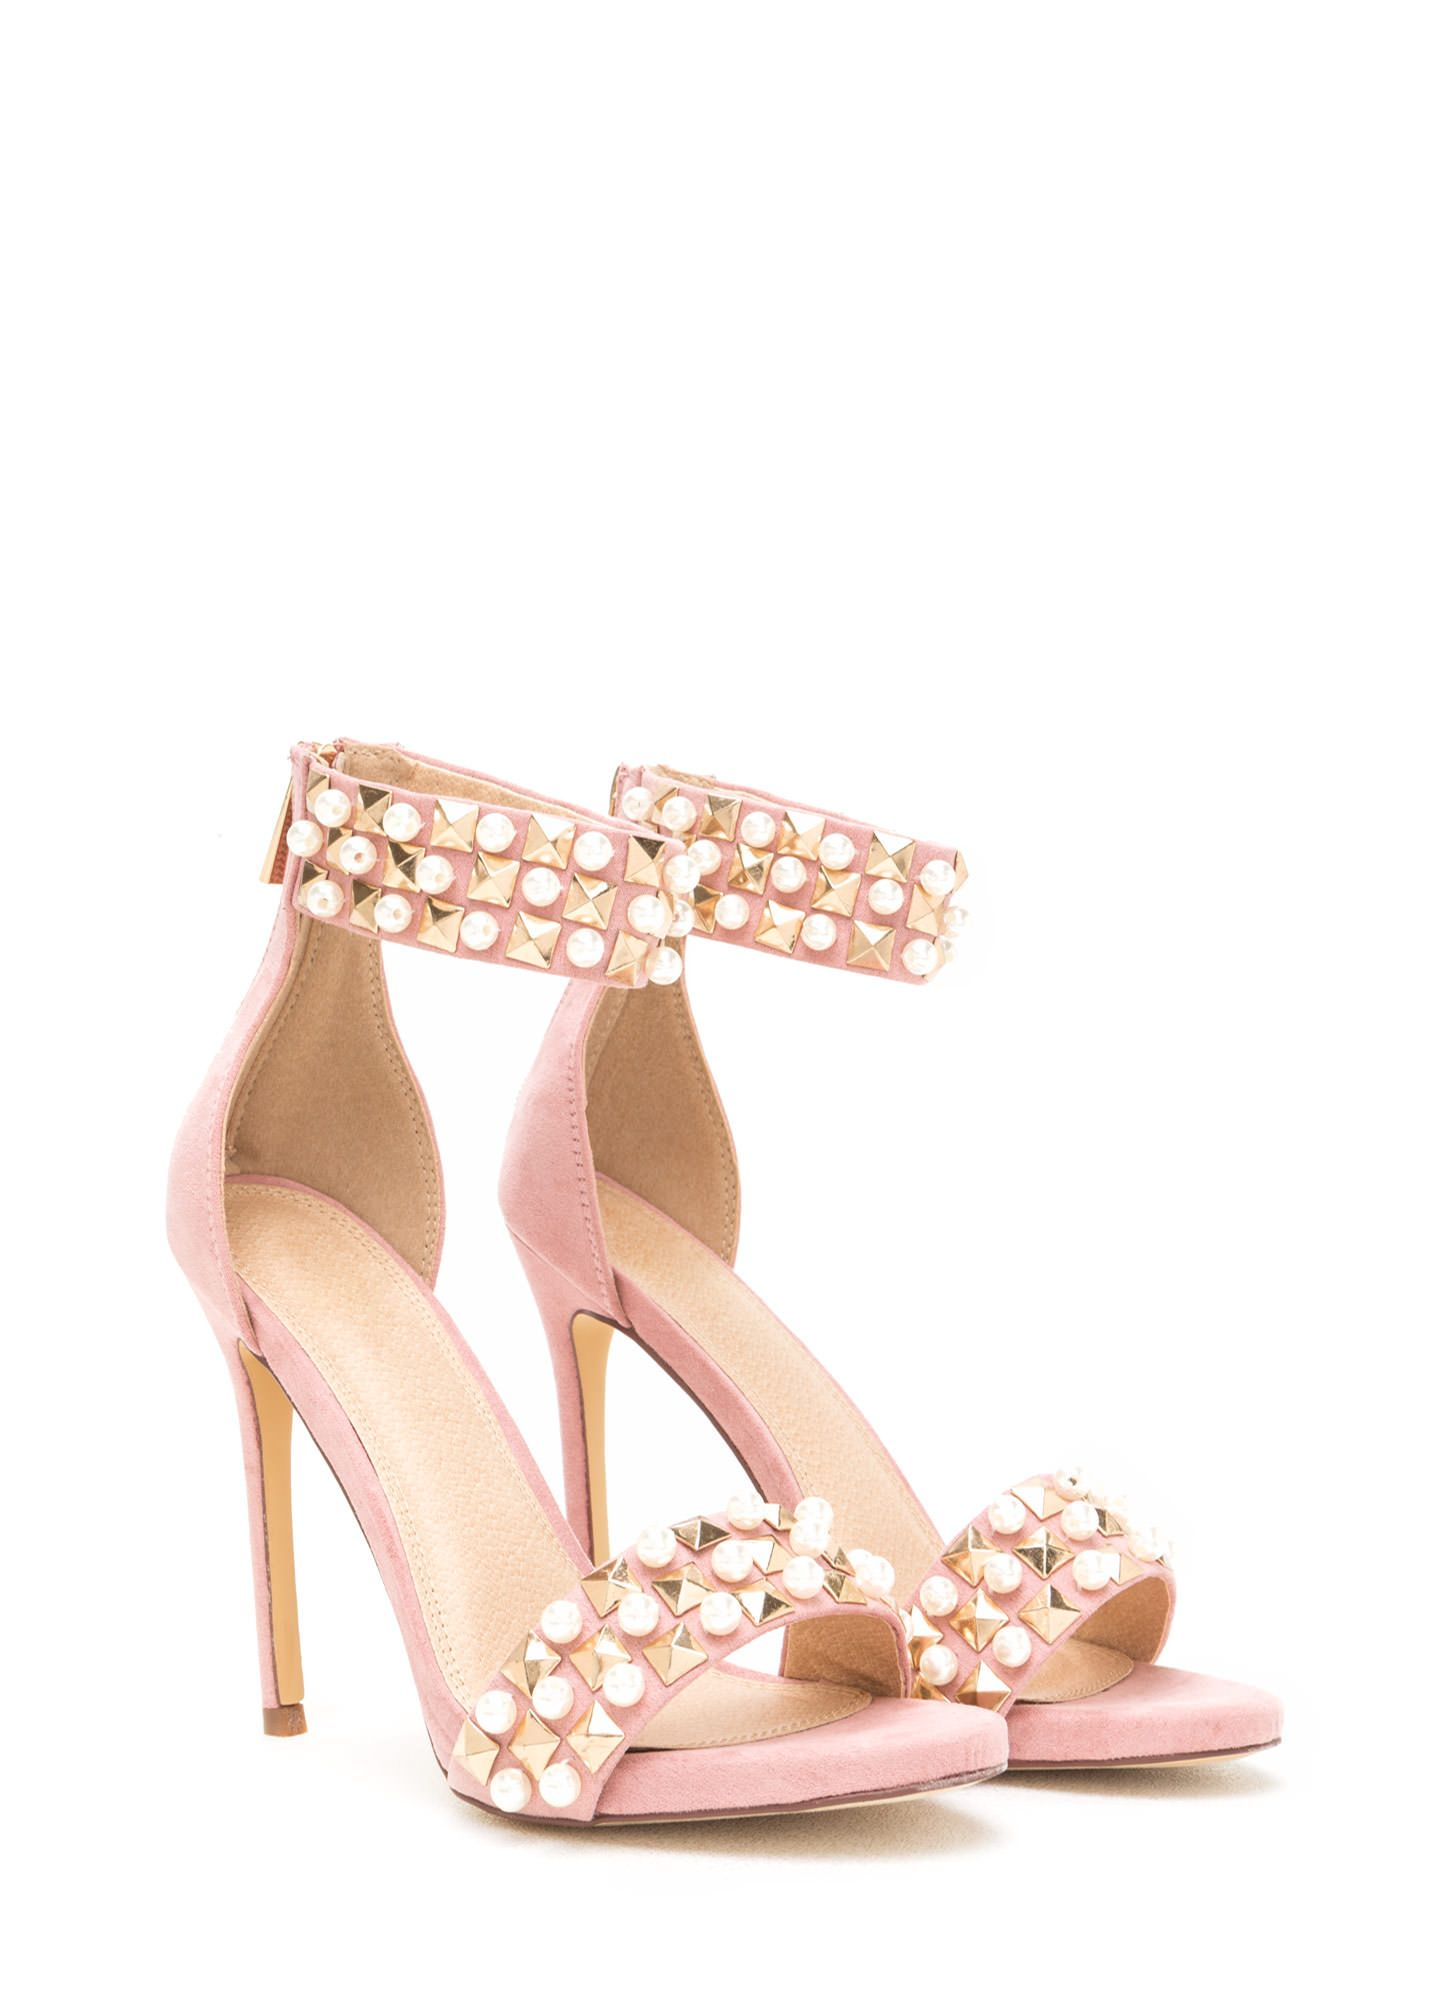 ac5c708b7f8 Pearls And Pyramids Ankle Strap Heels BLACK DUSTYPINK NUDE - GoJane ...